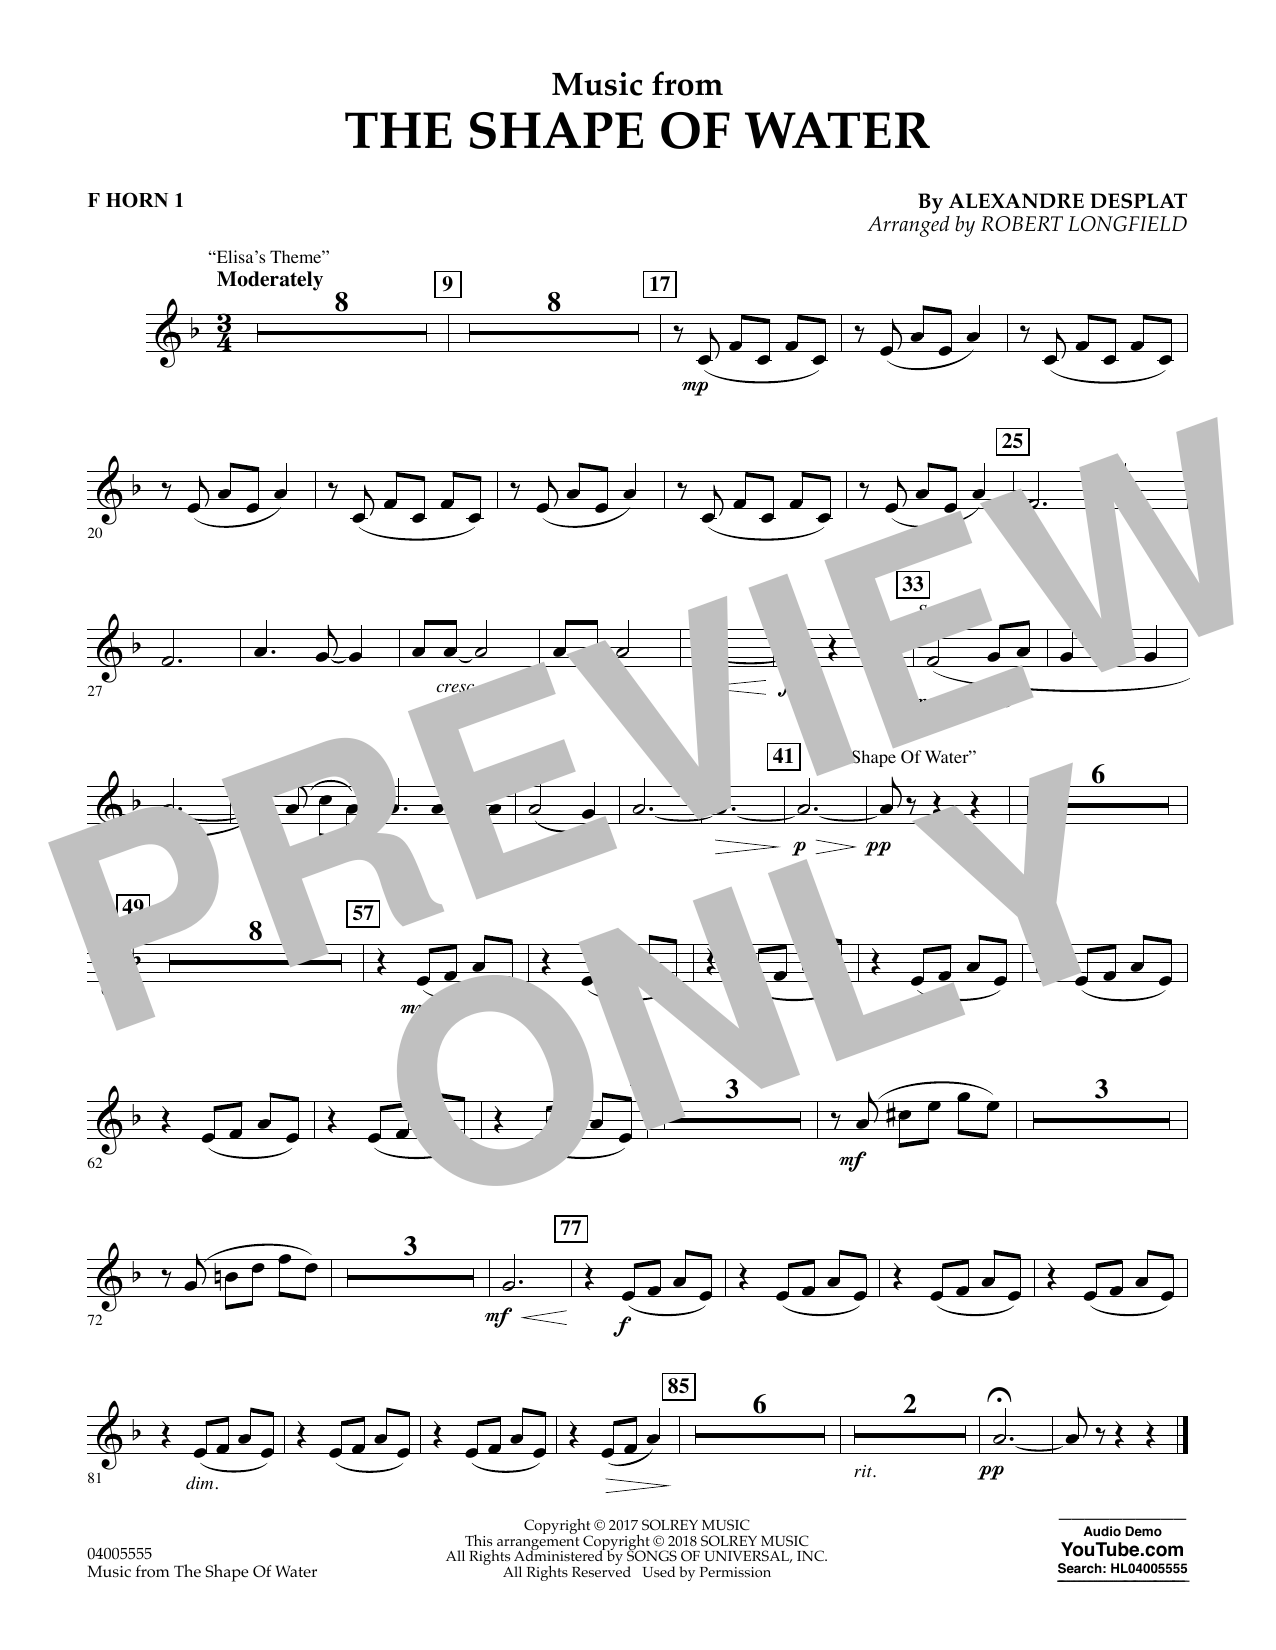 Music from The Shape of Water - F Horn 1 (Concert Band)